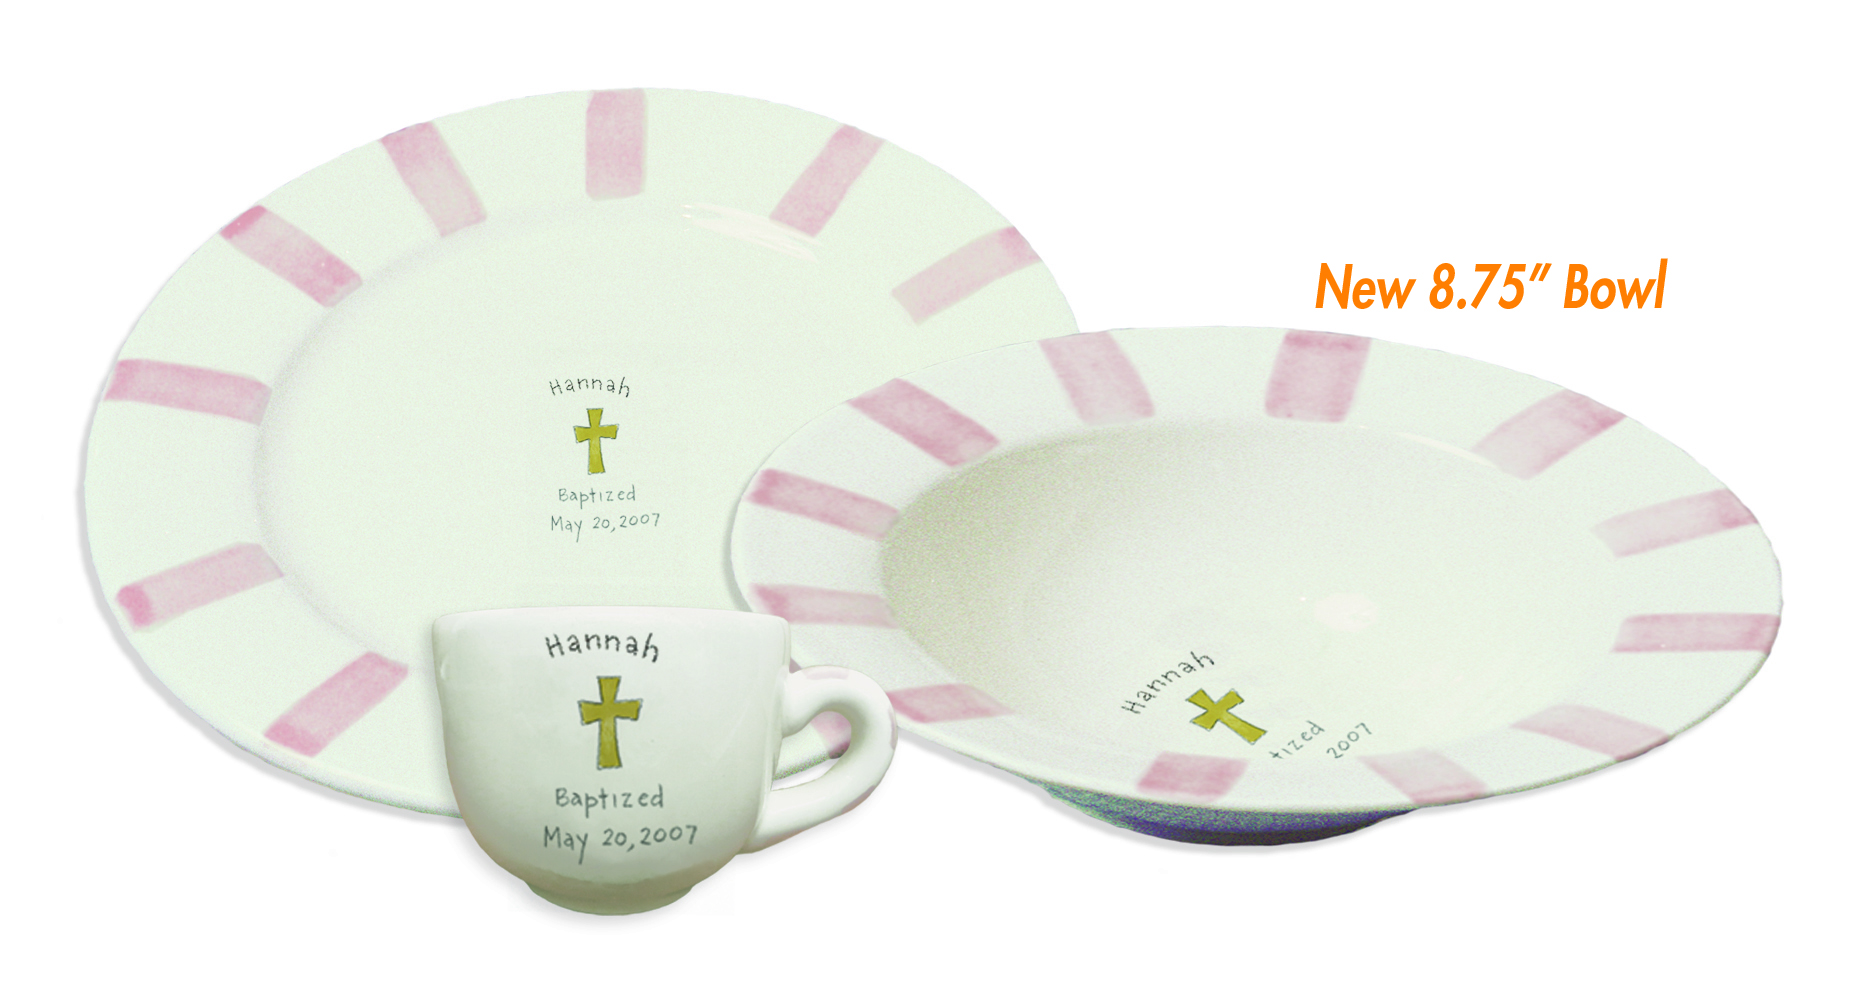 baptism pink dish set 2  sc 1 st  WhataDish.com & Baptism In Pink Dishes - What a Dish!